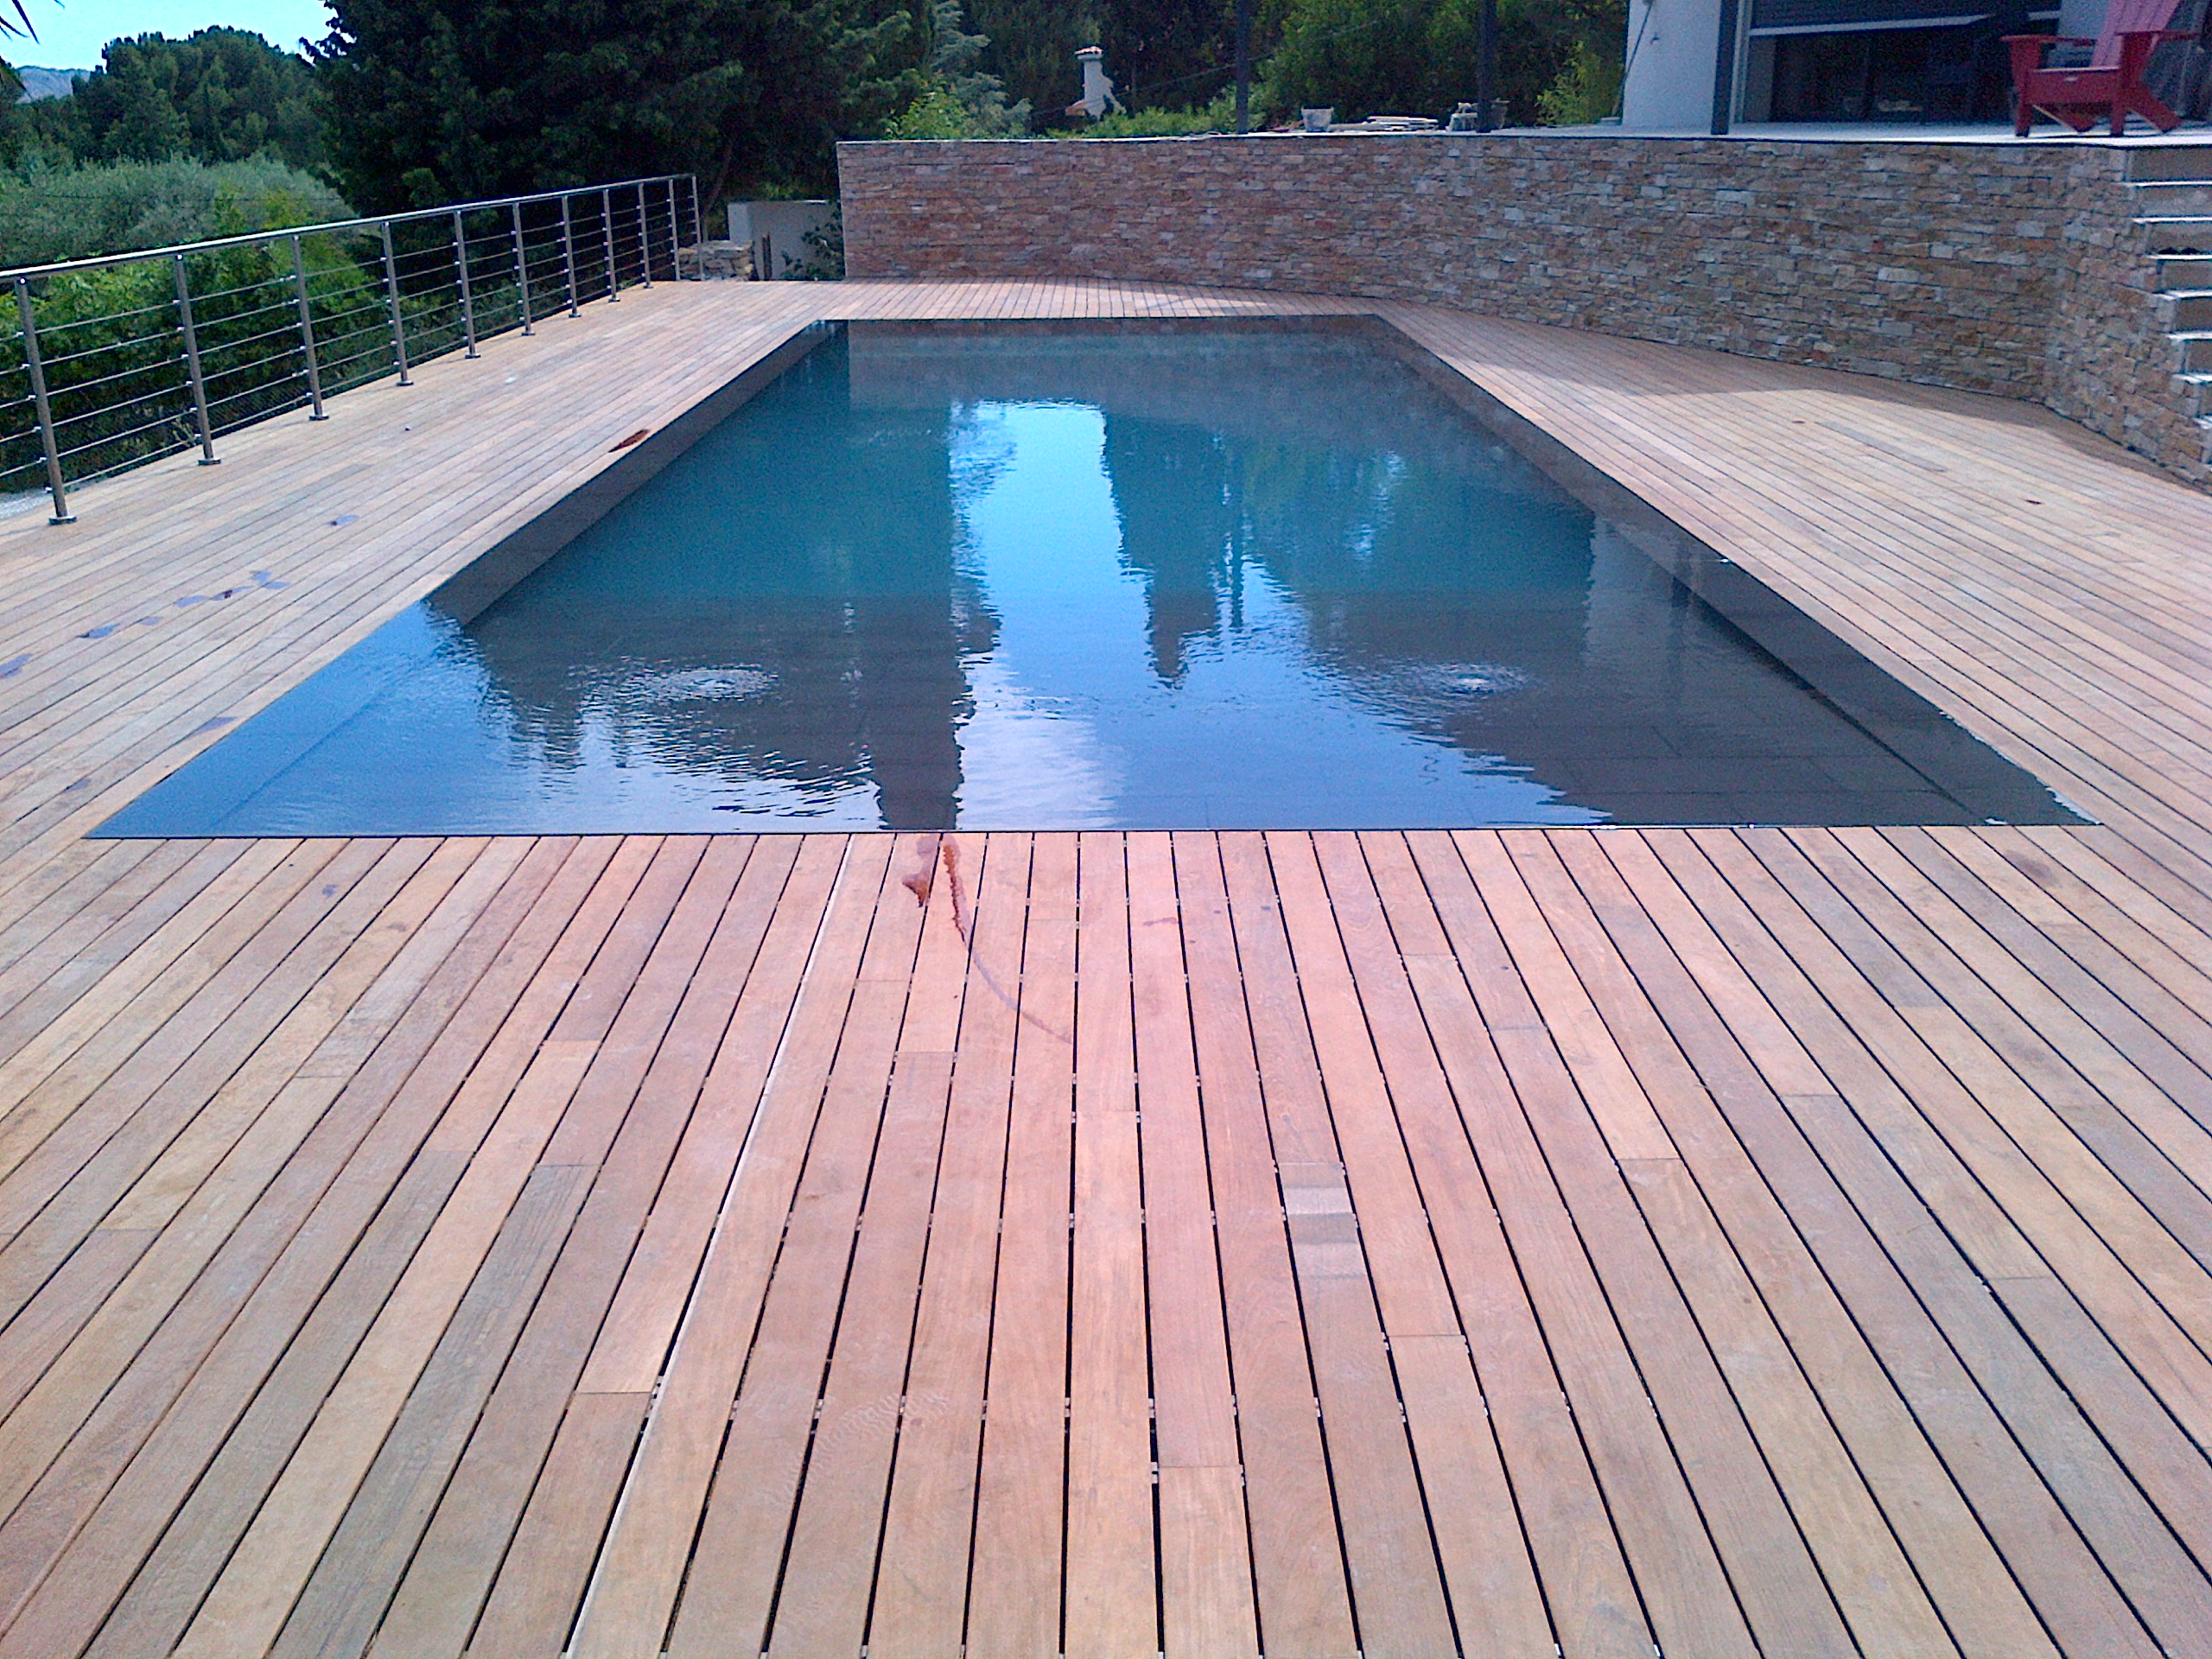 La piscine aquaset brignoles var draguignan fr jus for Revetement piscine miroir